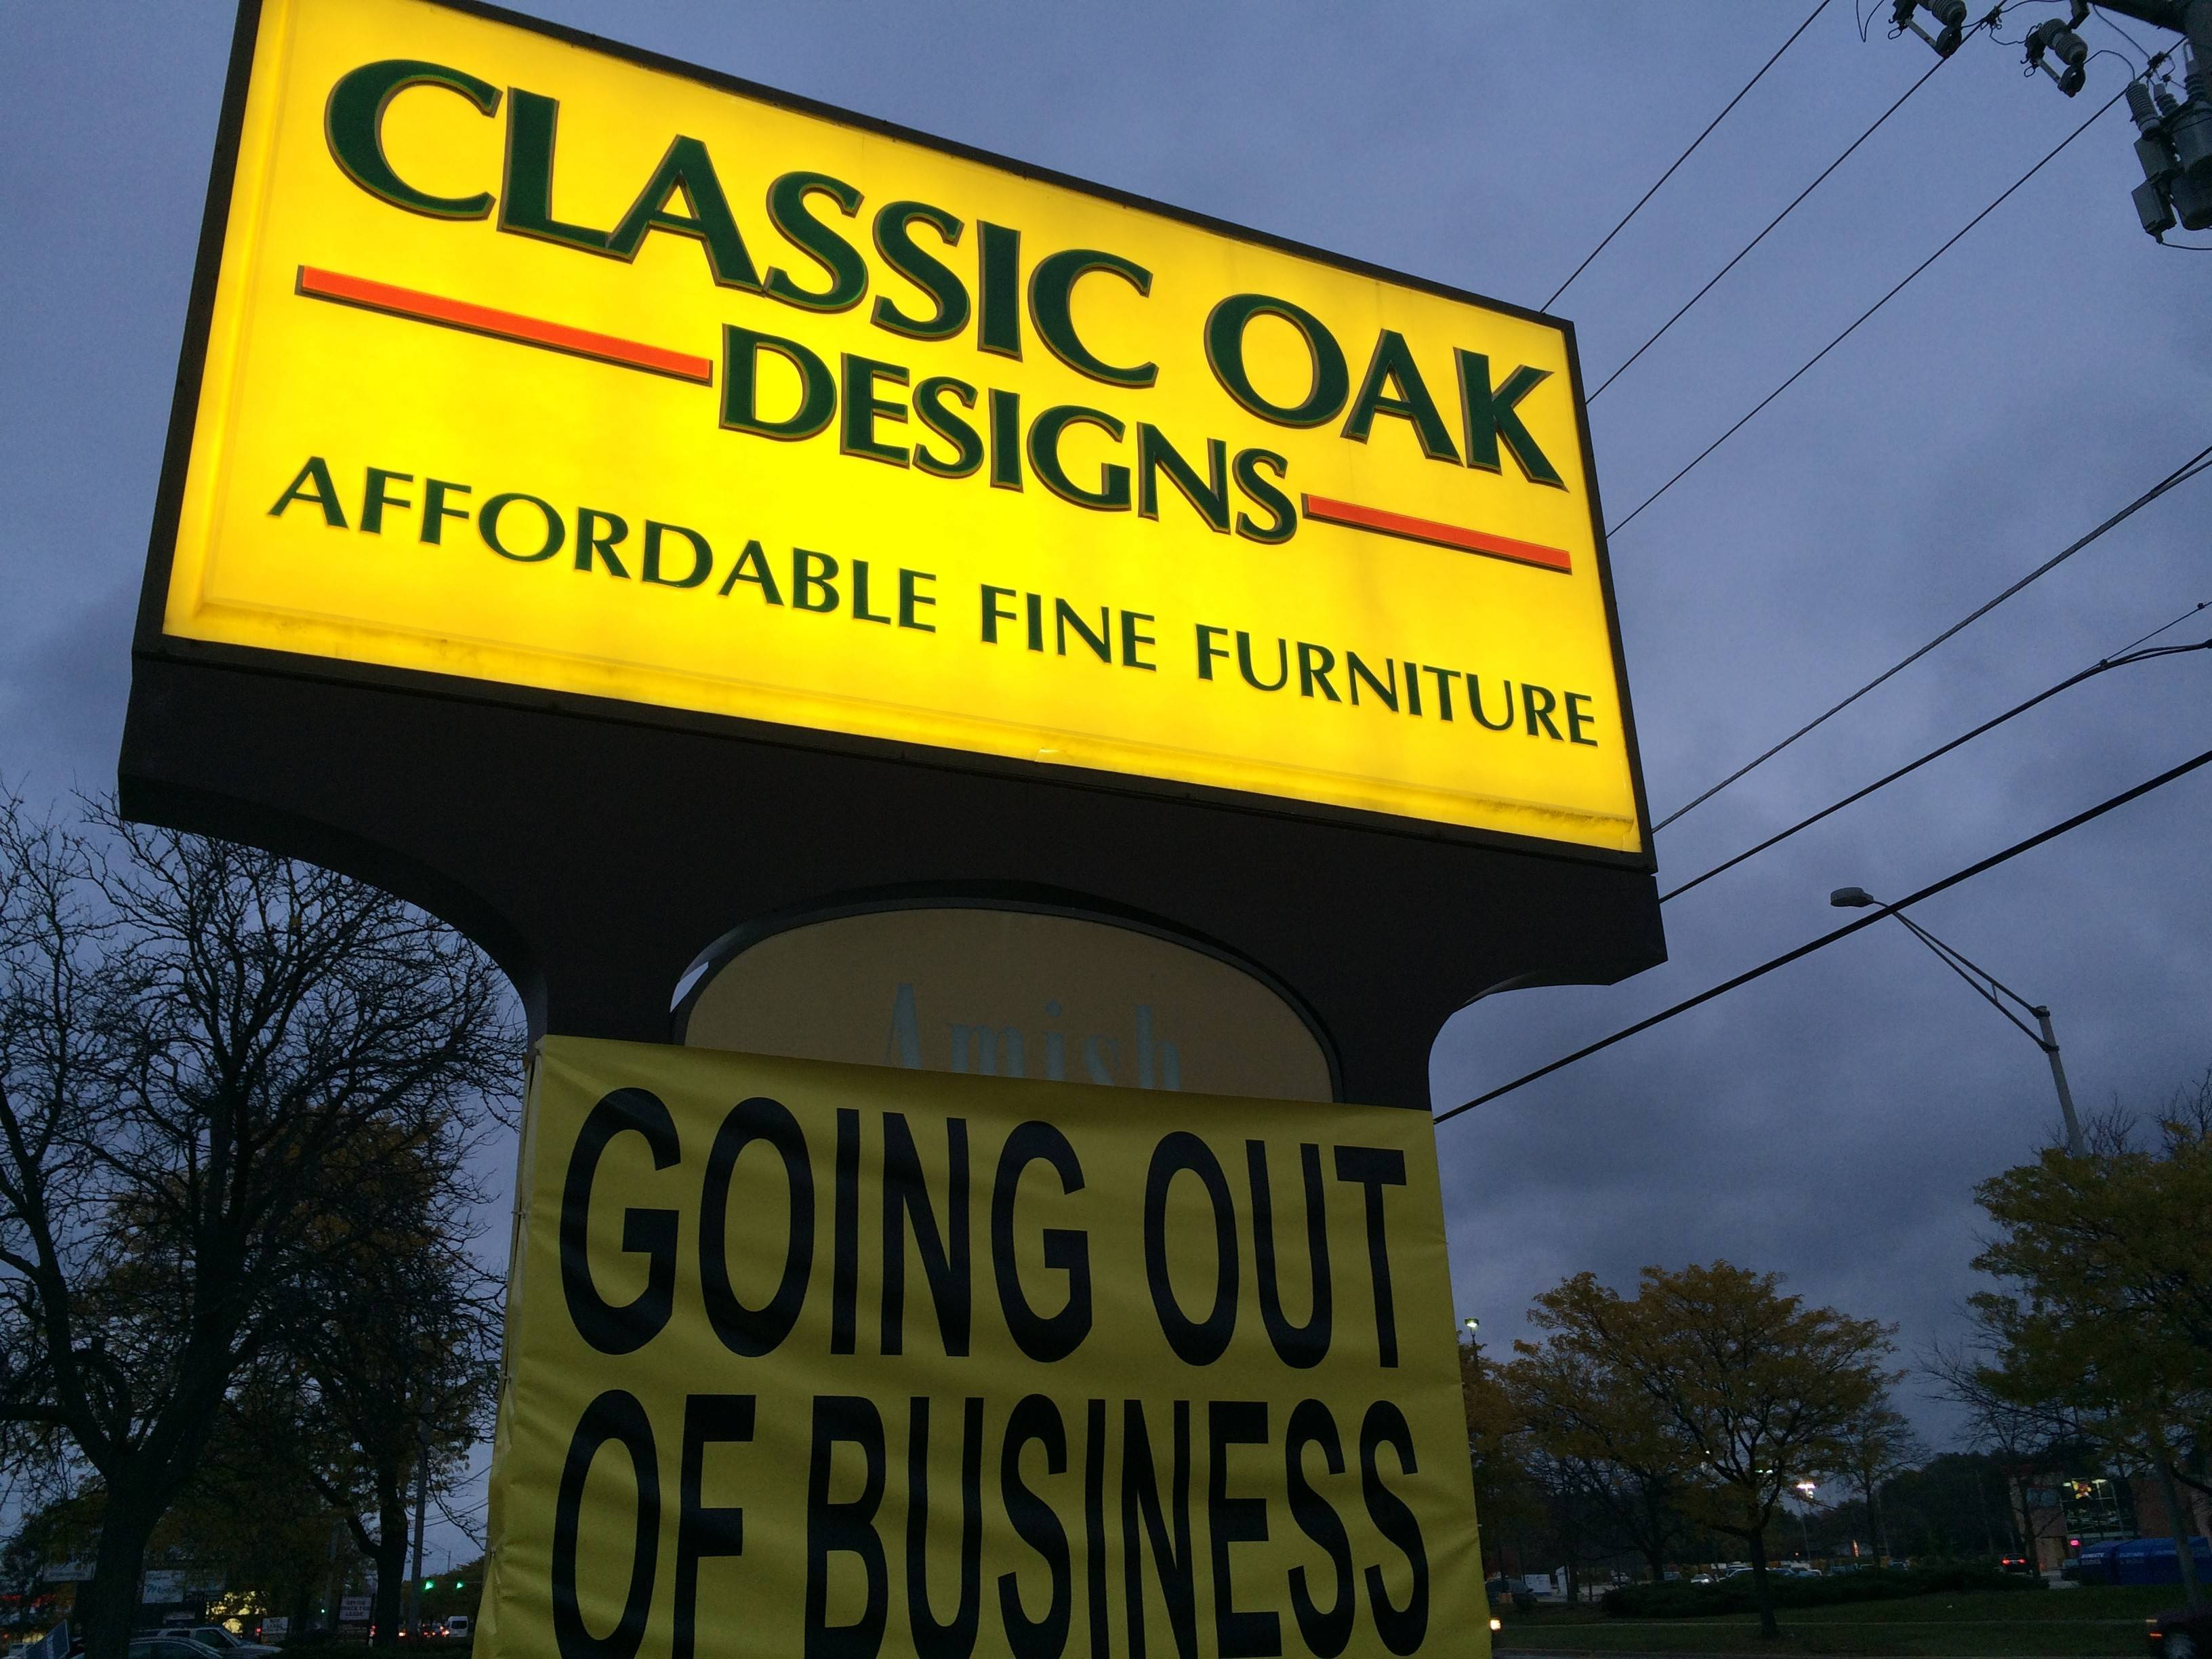 Classic Oak In Arlington Heights Is Going Out Of Business After 34 Years In  The Community